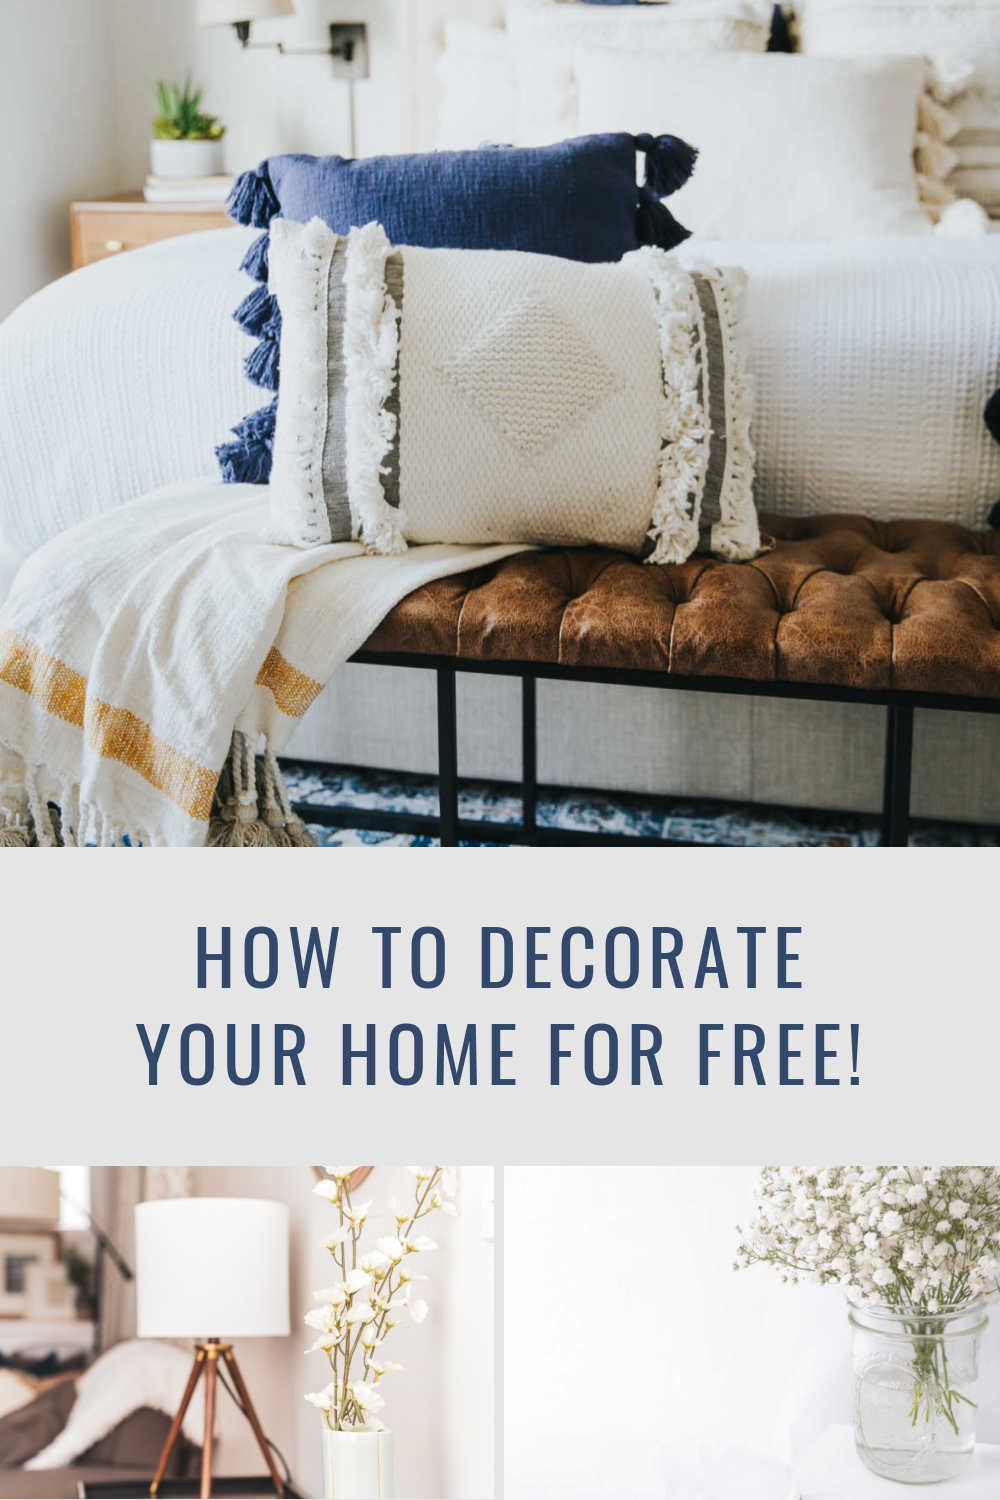 DECORATE FREE OR BUDGET